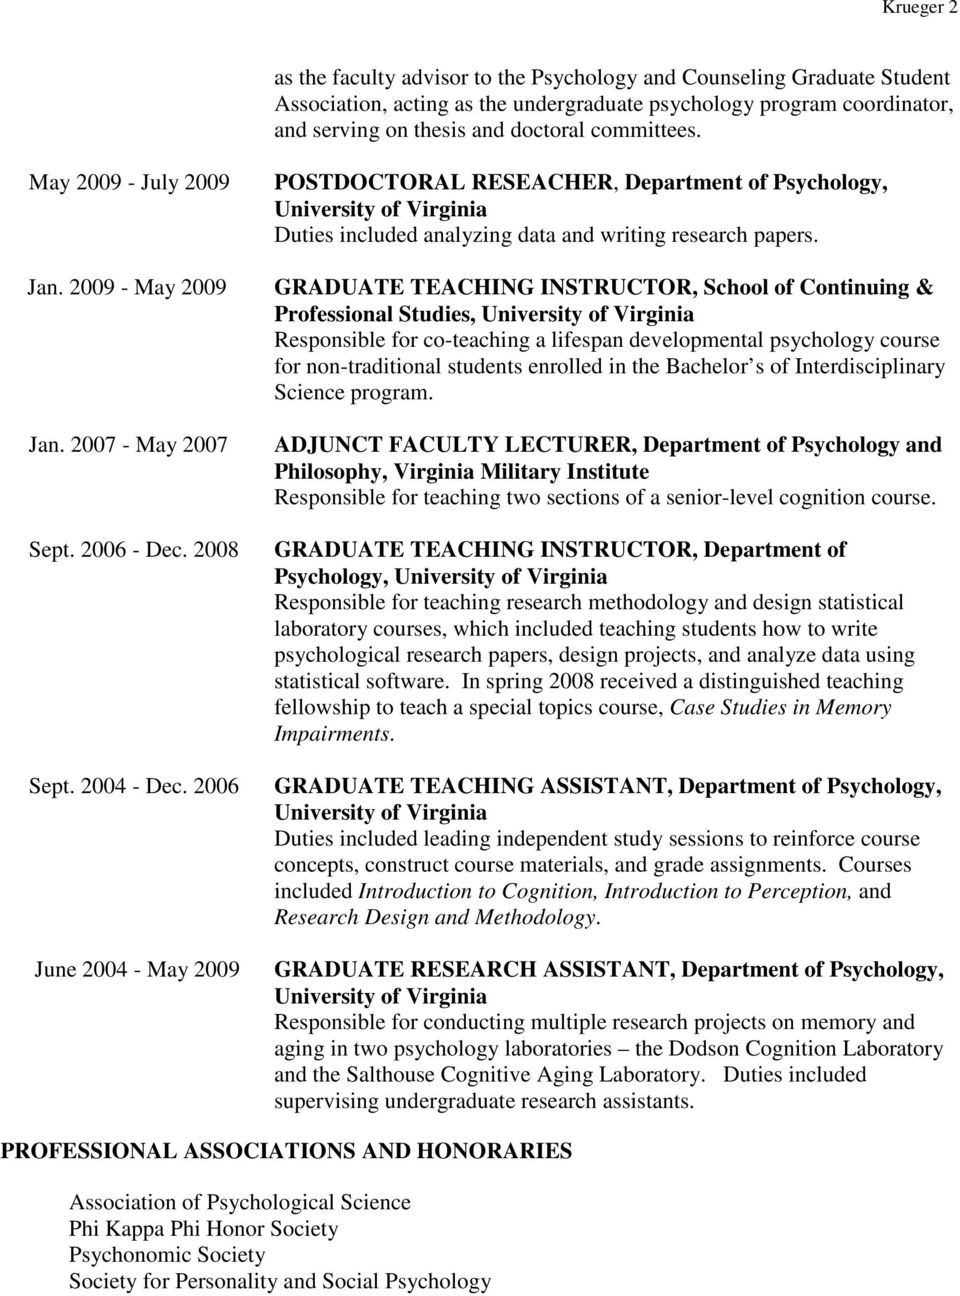 2006 June 2004 - May 2009 POSTDOCTORAL RESEACHER, Department of Psychology, University of Virginia Duties included analyzing data and writing research papers.